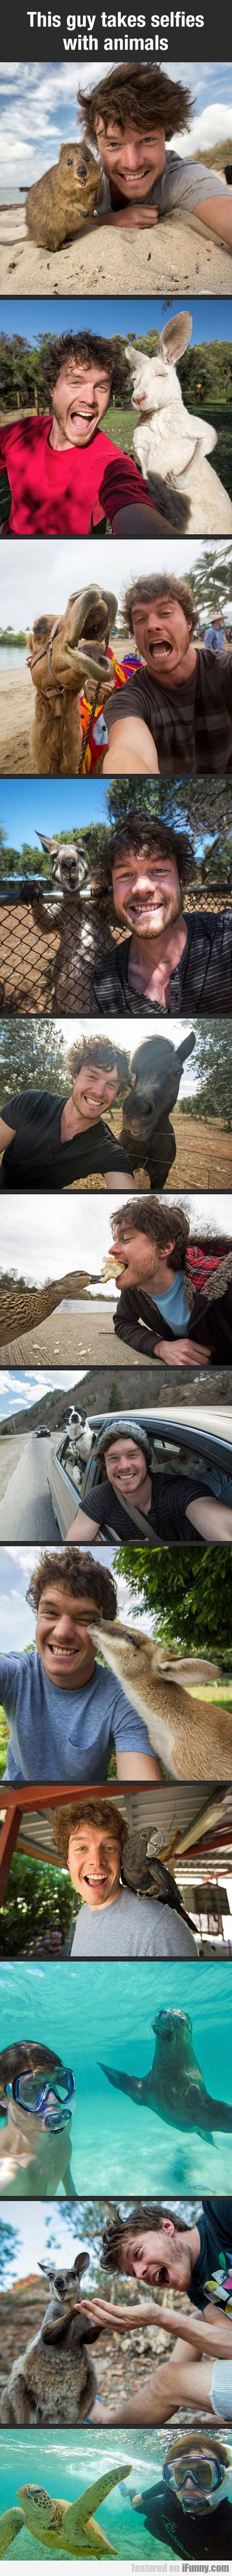 This Guy Takes Selfies With Animals #Funny-Pics http://www.flaproductions.net/funny-pics/this-guy-takes-selfies-with-animals/34494/?utm_source=PN&utm_medium=http%3A%2F%2Fwww.pinterest.com%2Falliefernandez3%2Fgreat%2F&utm_campaign=FlaProductions